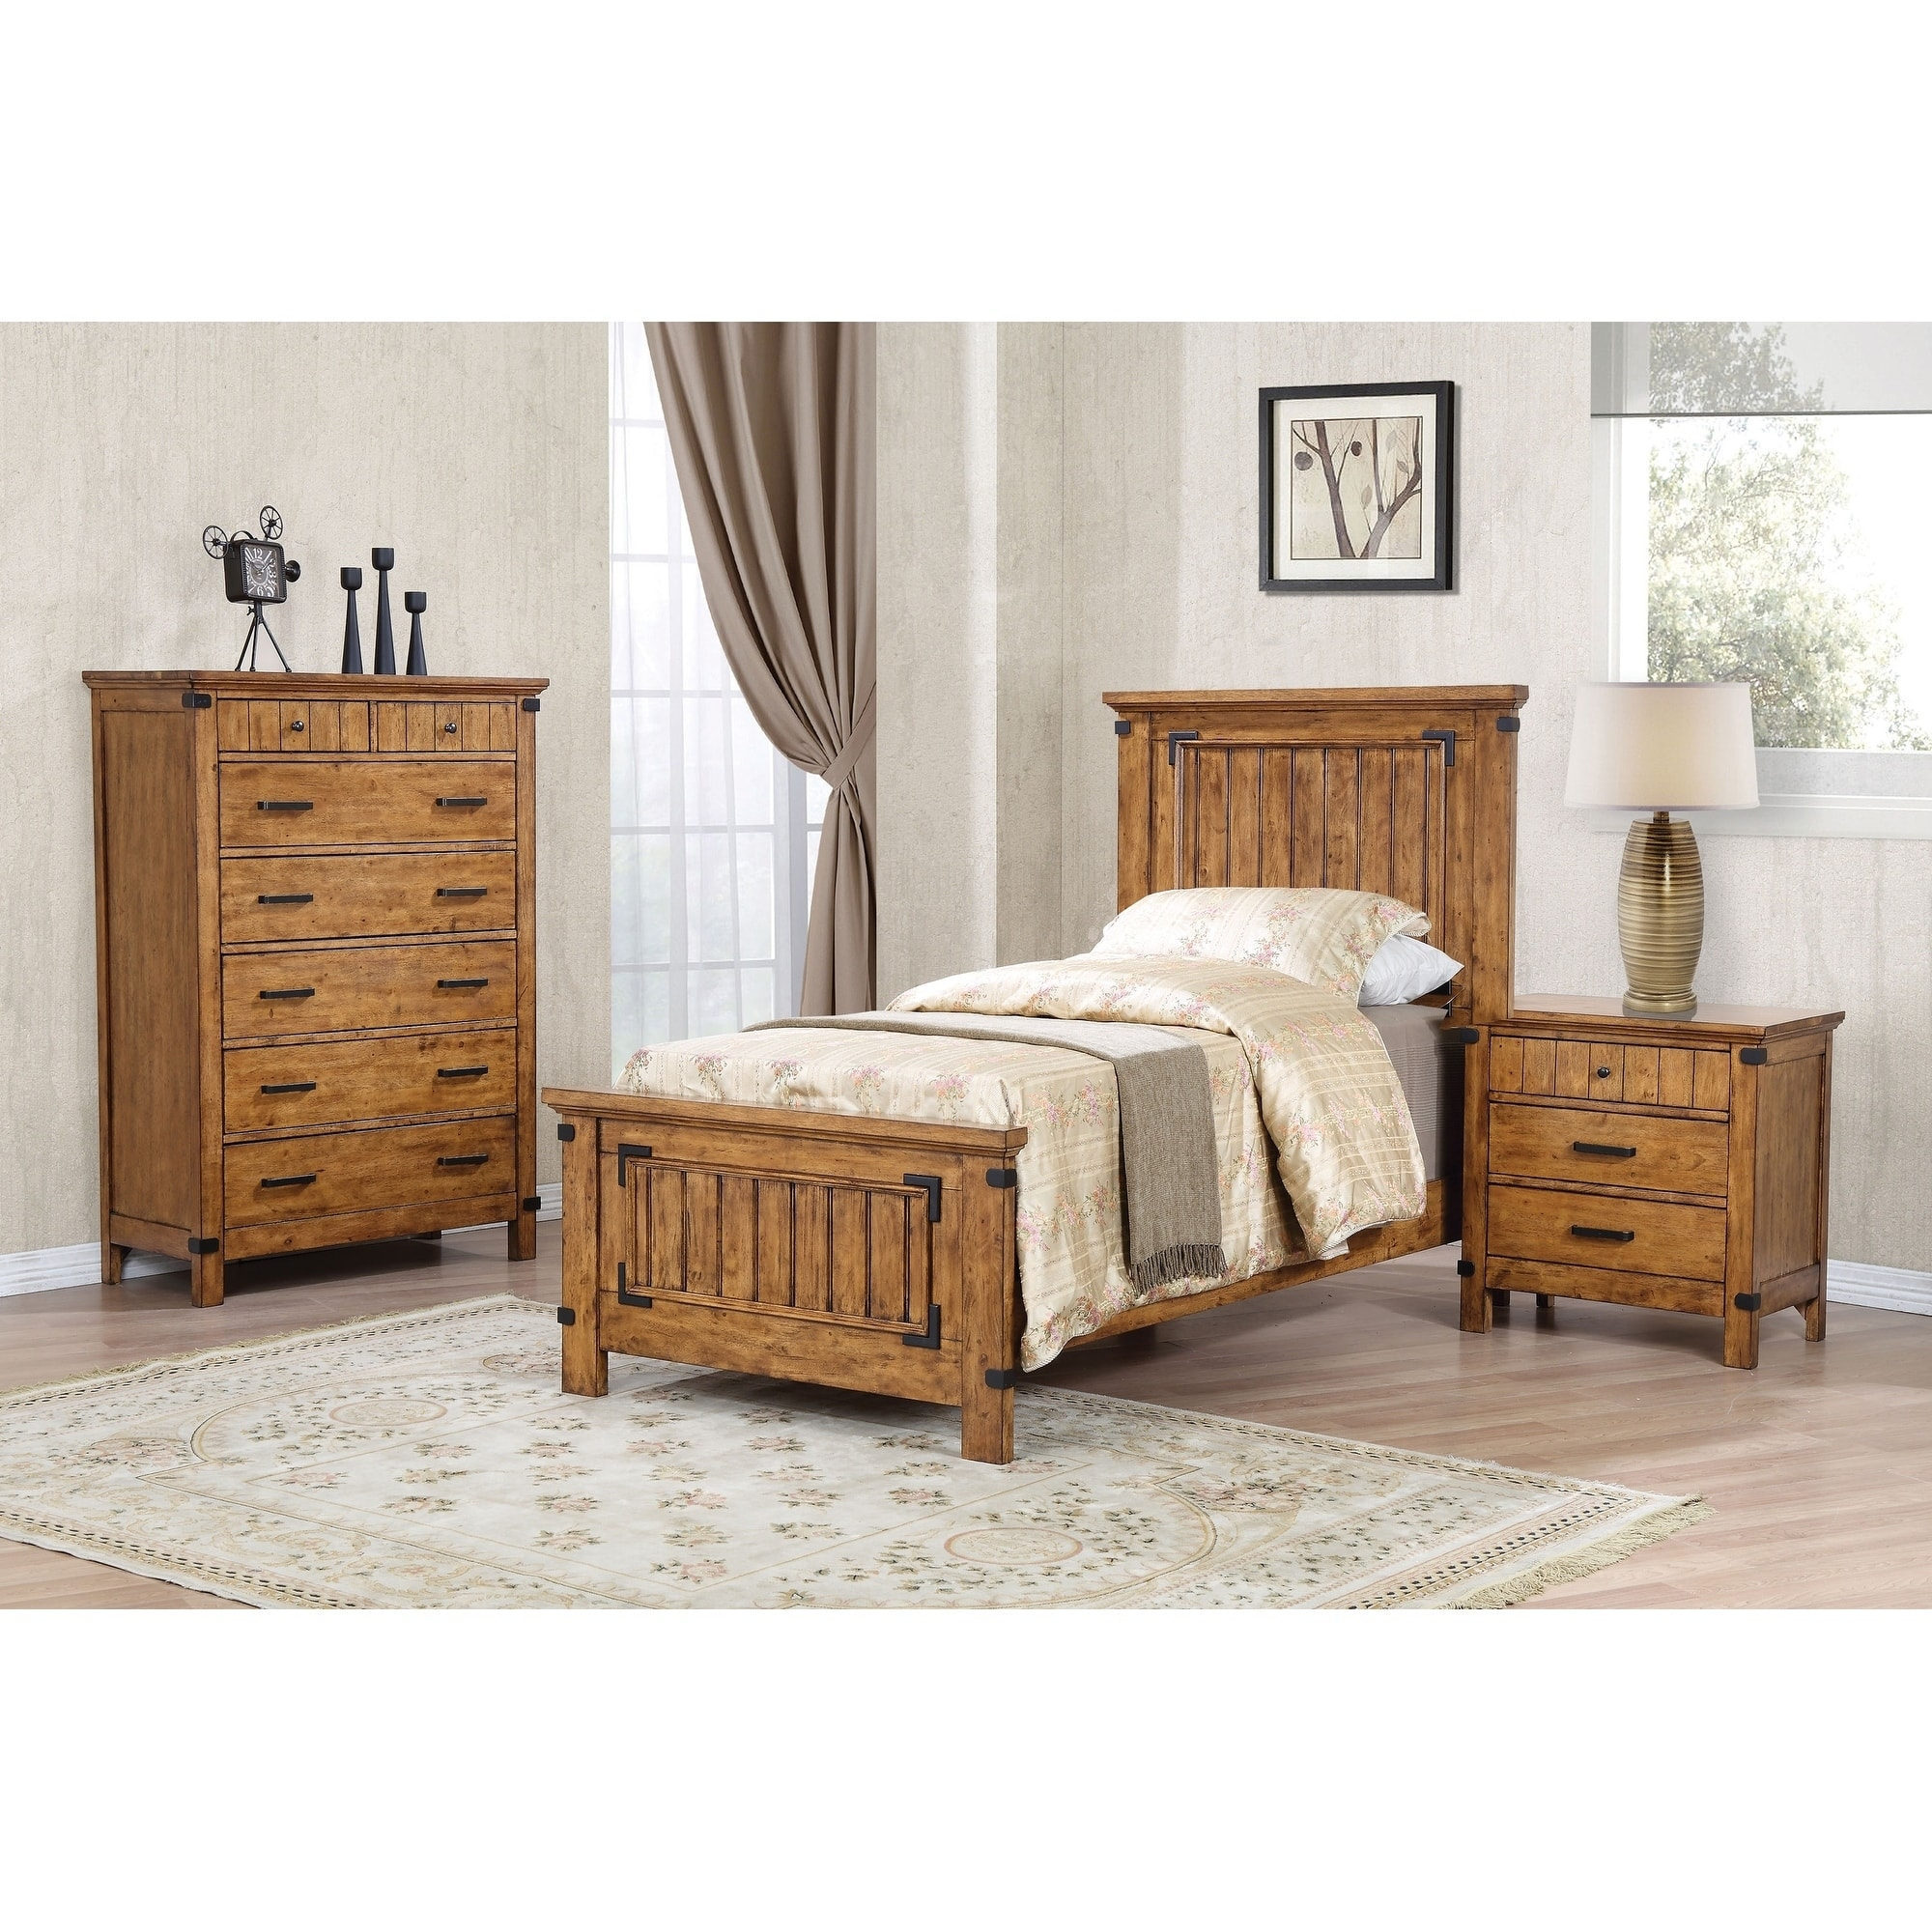 Best Place To Buy Bedroom Furniture: Buy Bedroom Sets Online At Overstock